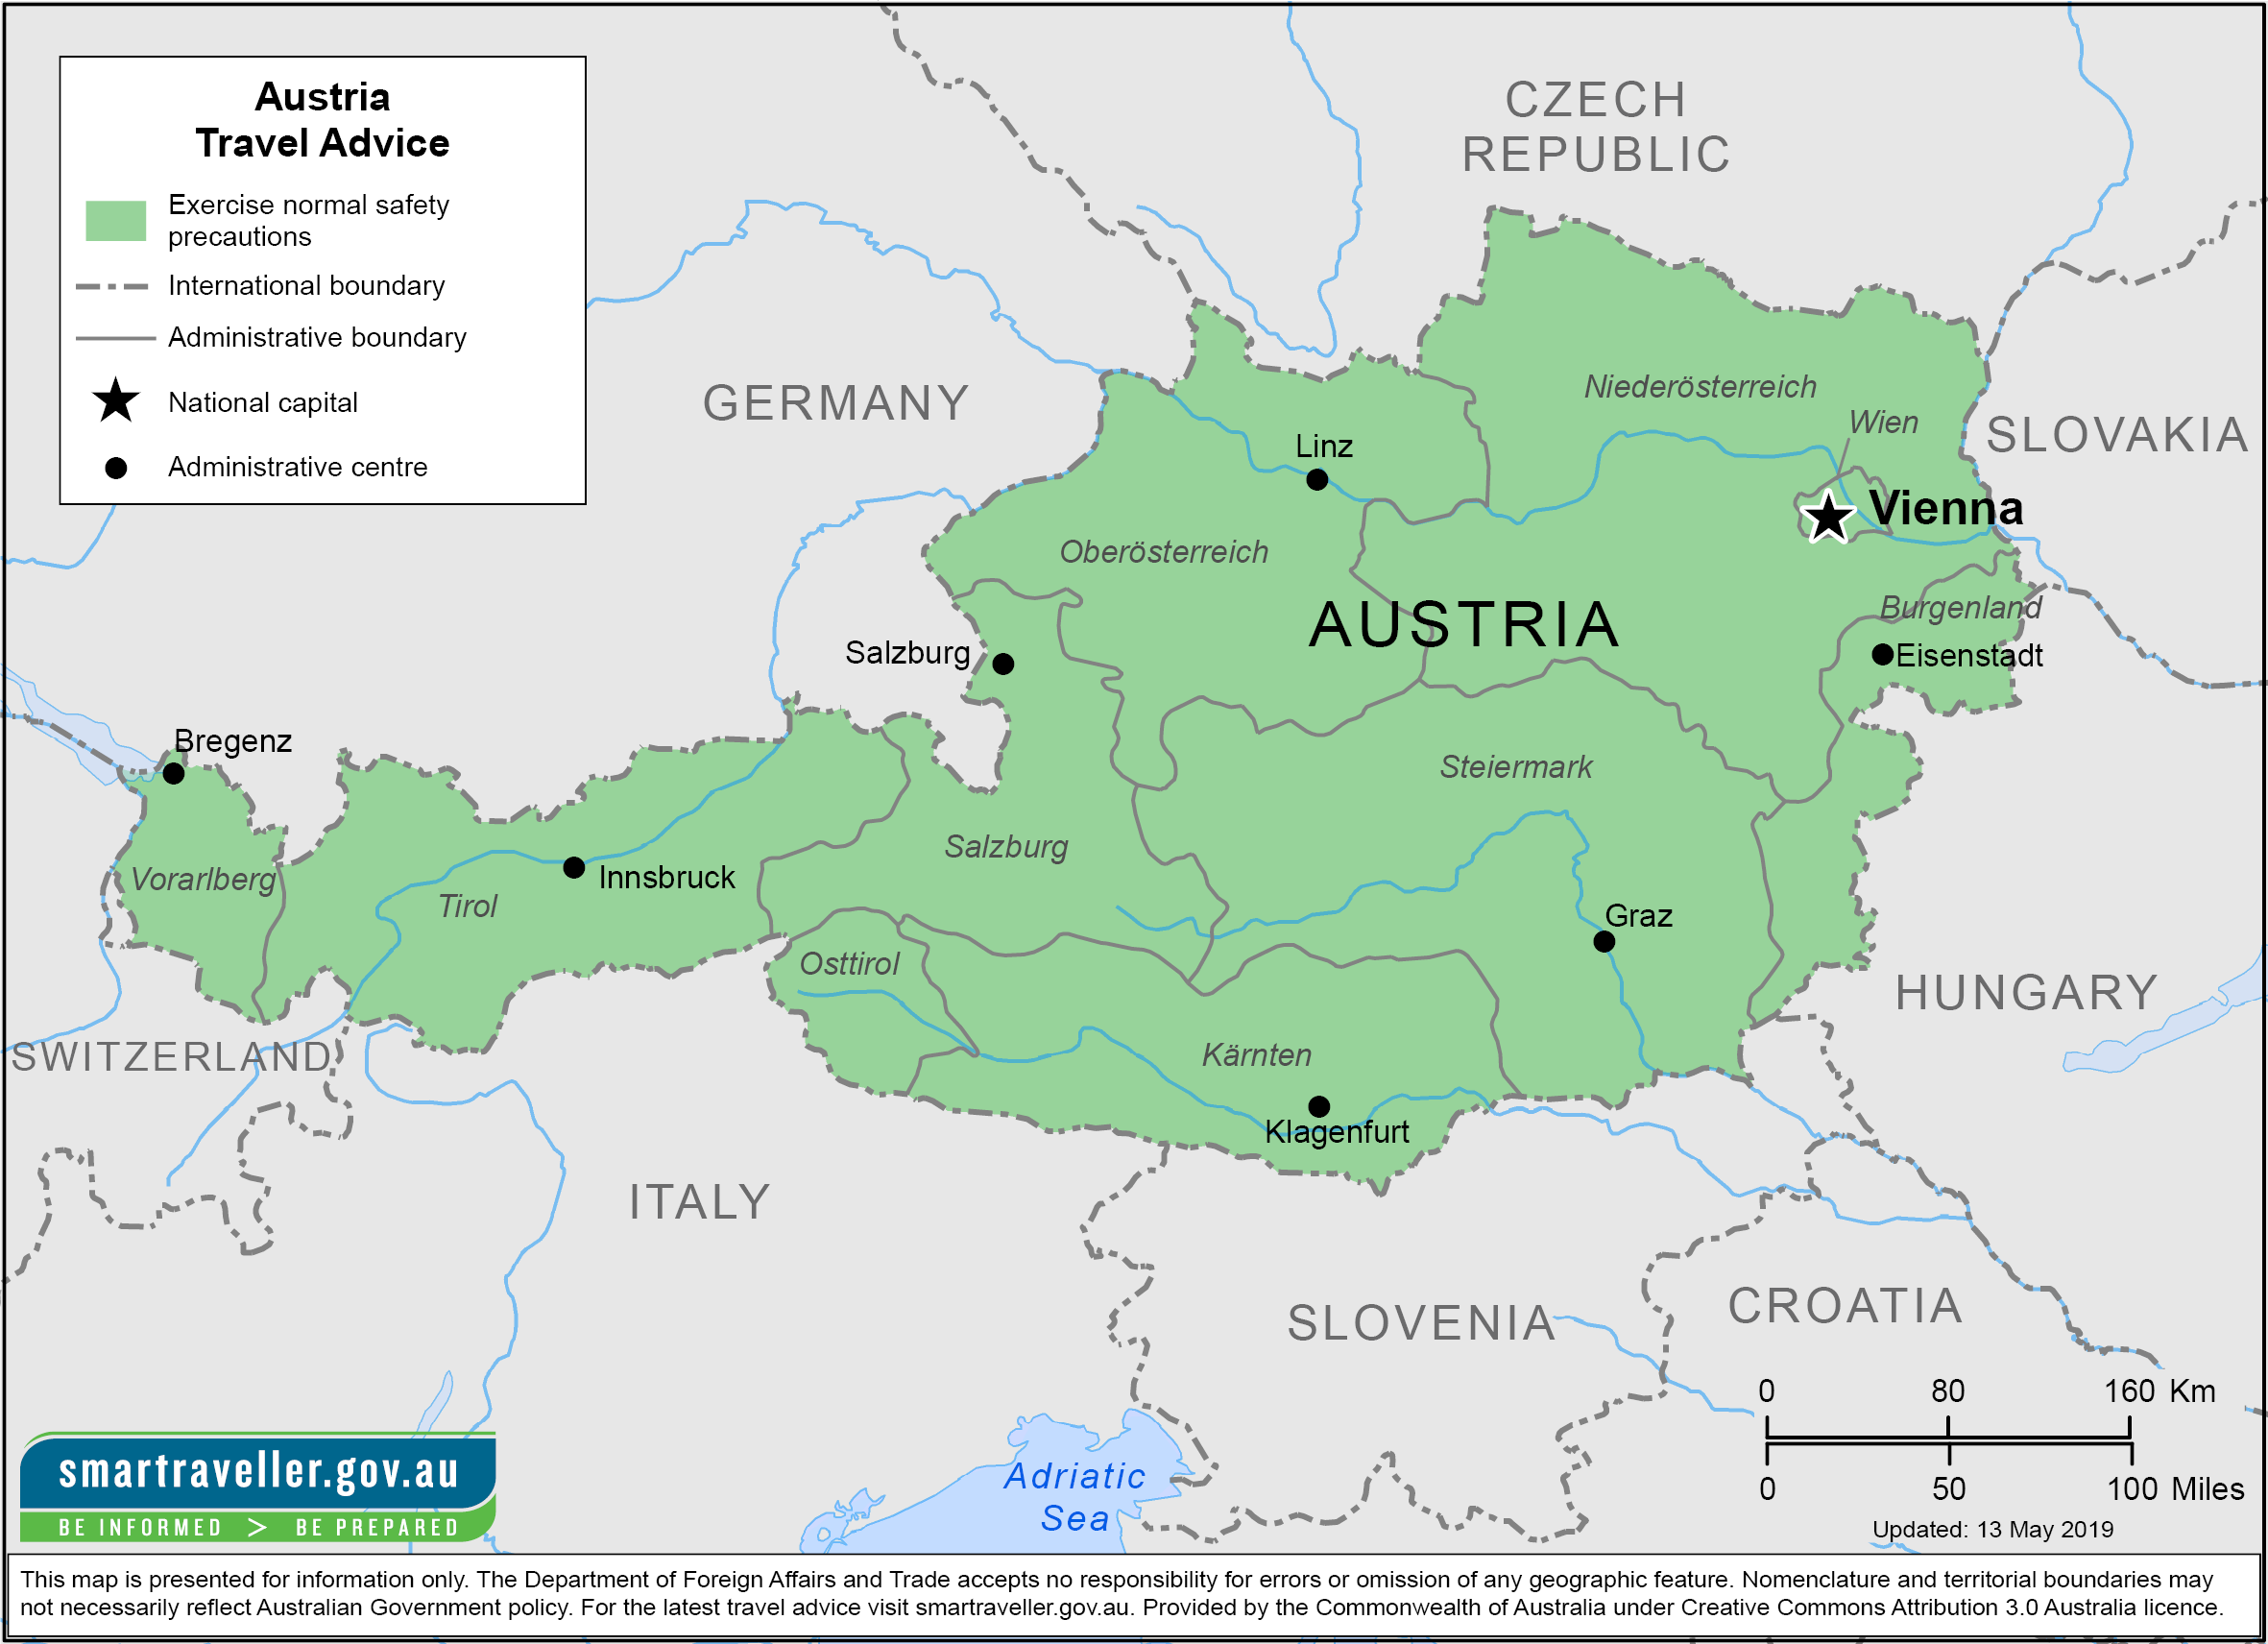 Austria Traveler Information - Travel Advice